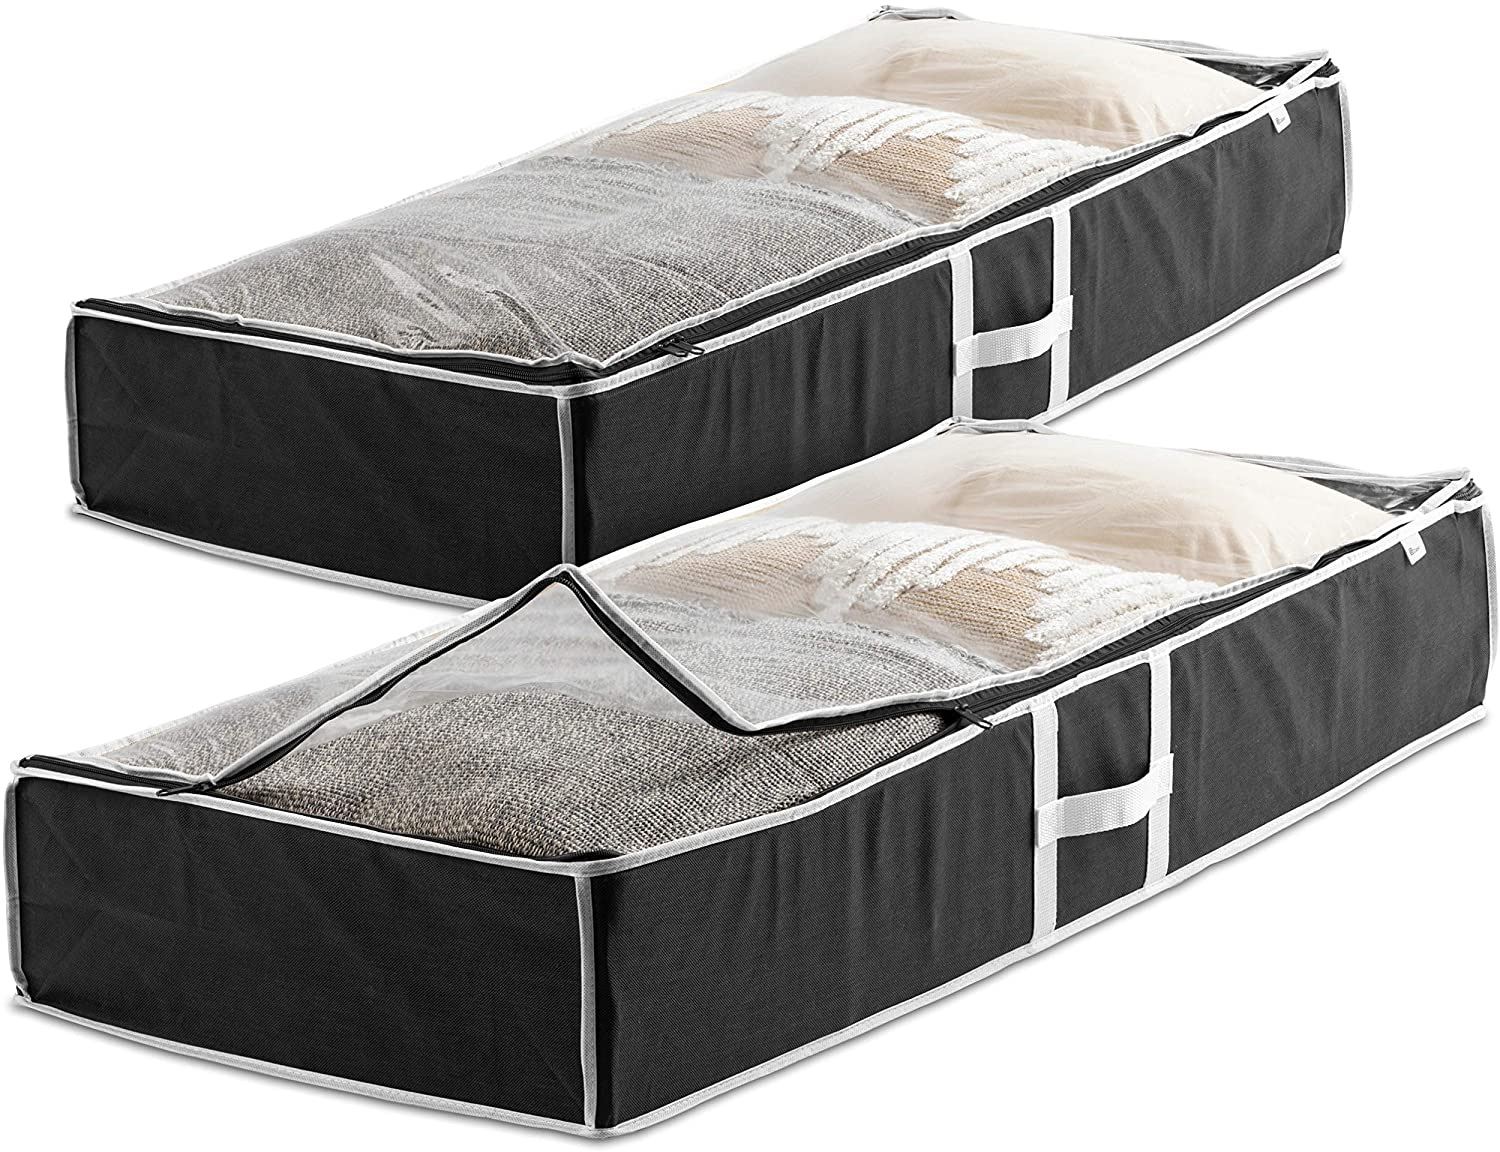 Zober Non-Woven Material Under Bed Storage, 2-Pack